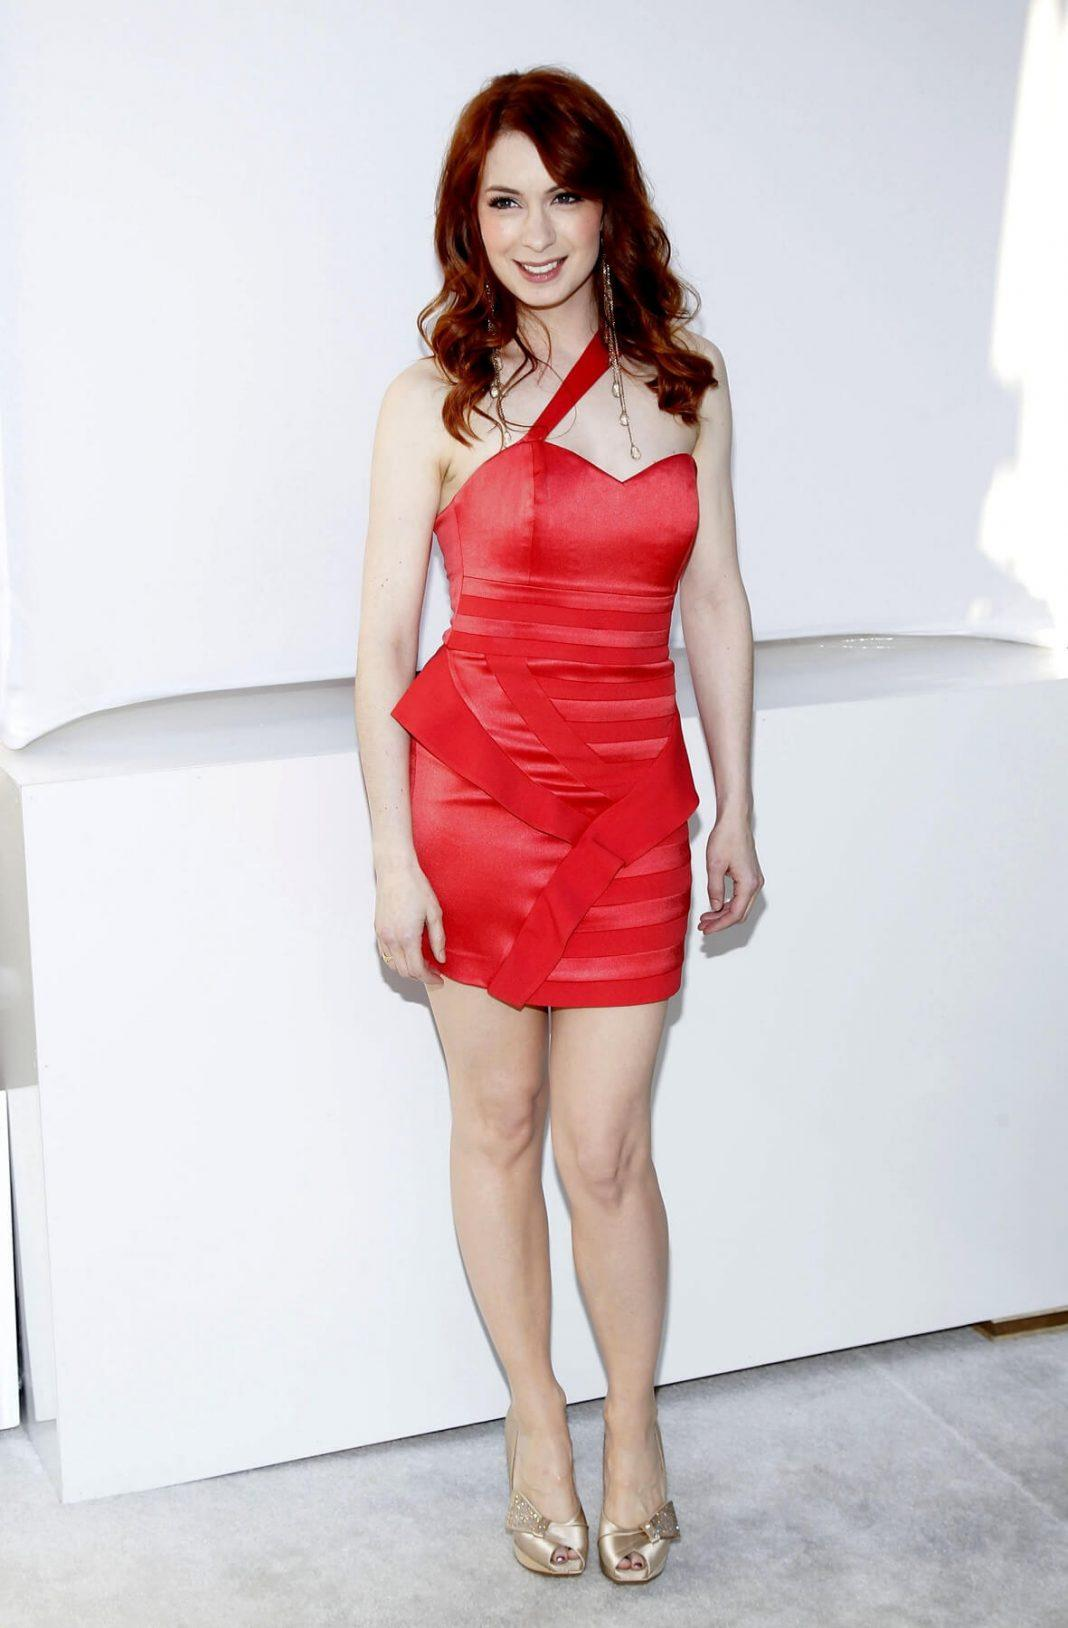 Felicia Day sexy red dress pics